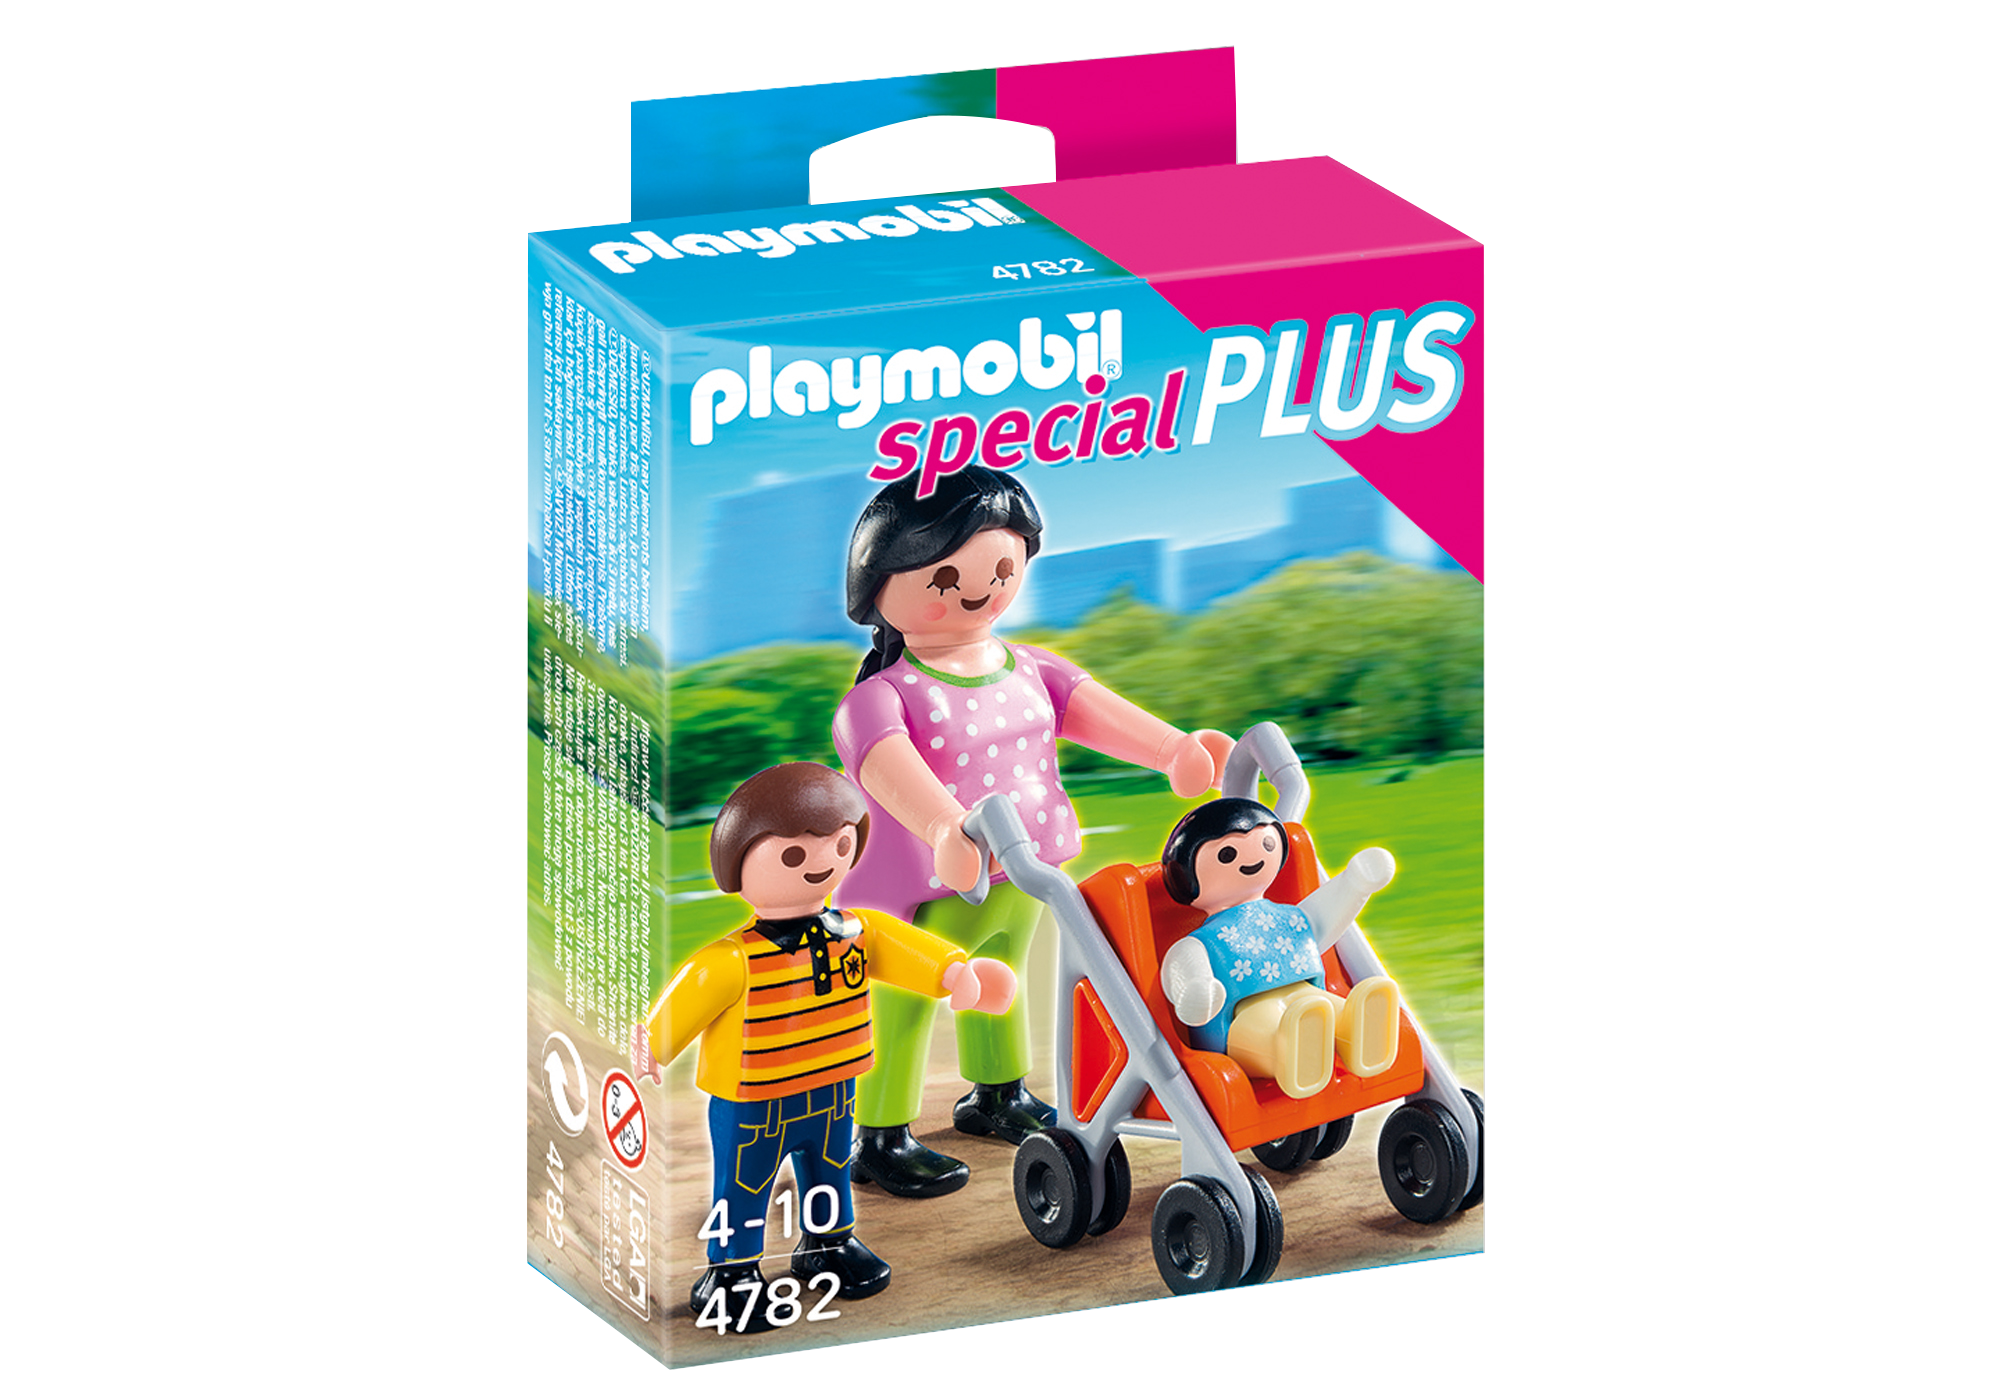 http://media.playmobil.com/i/playmobil/4782_product_box_front